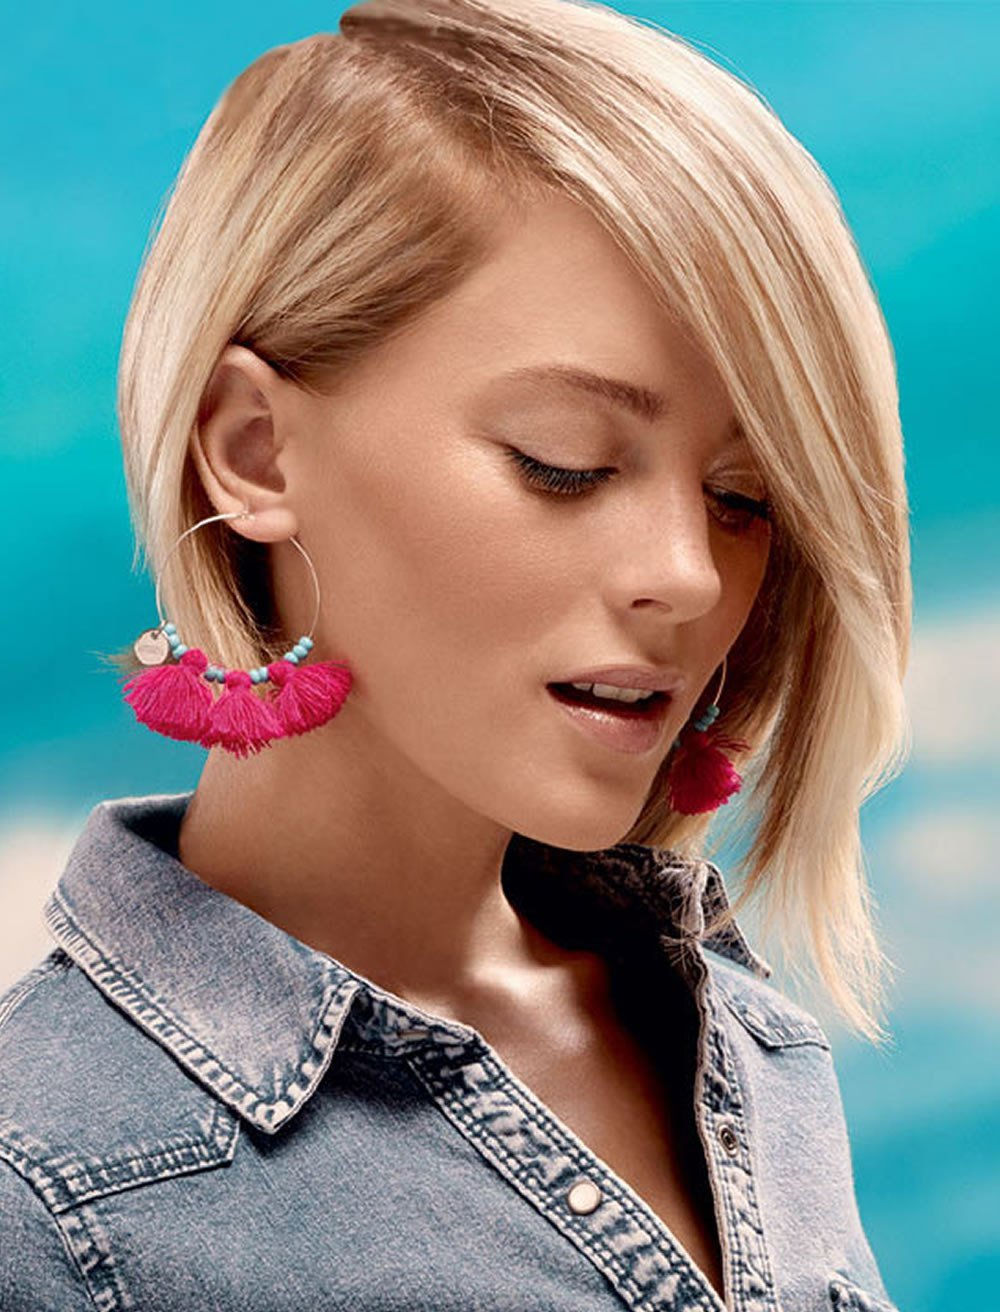 The Best 33 Short Bob Haircuts – 2019 Short Hairstyles For Women – Hairstyles Pictures